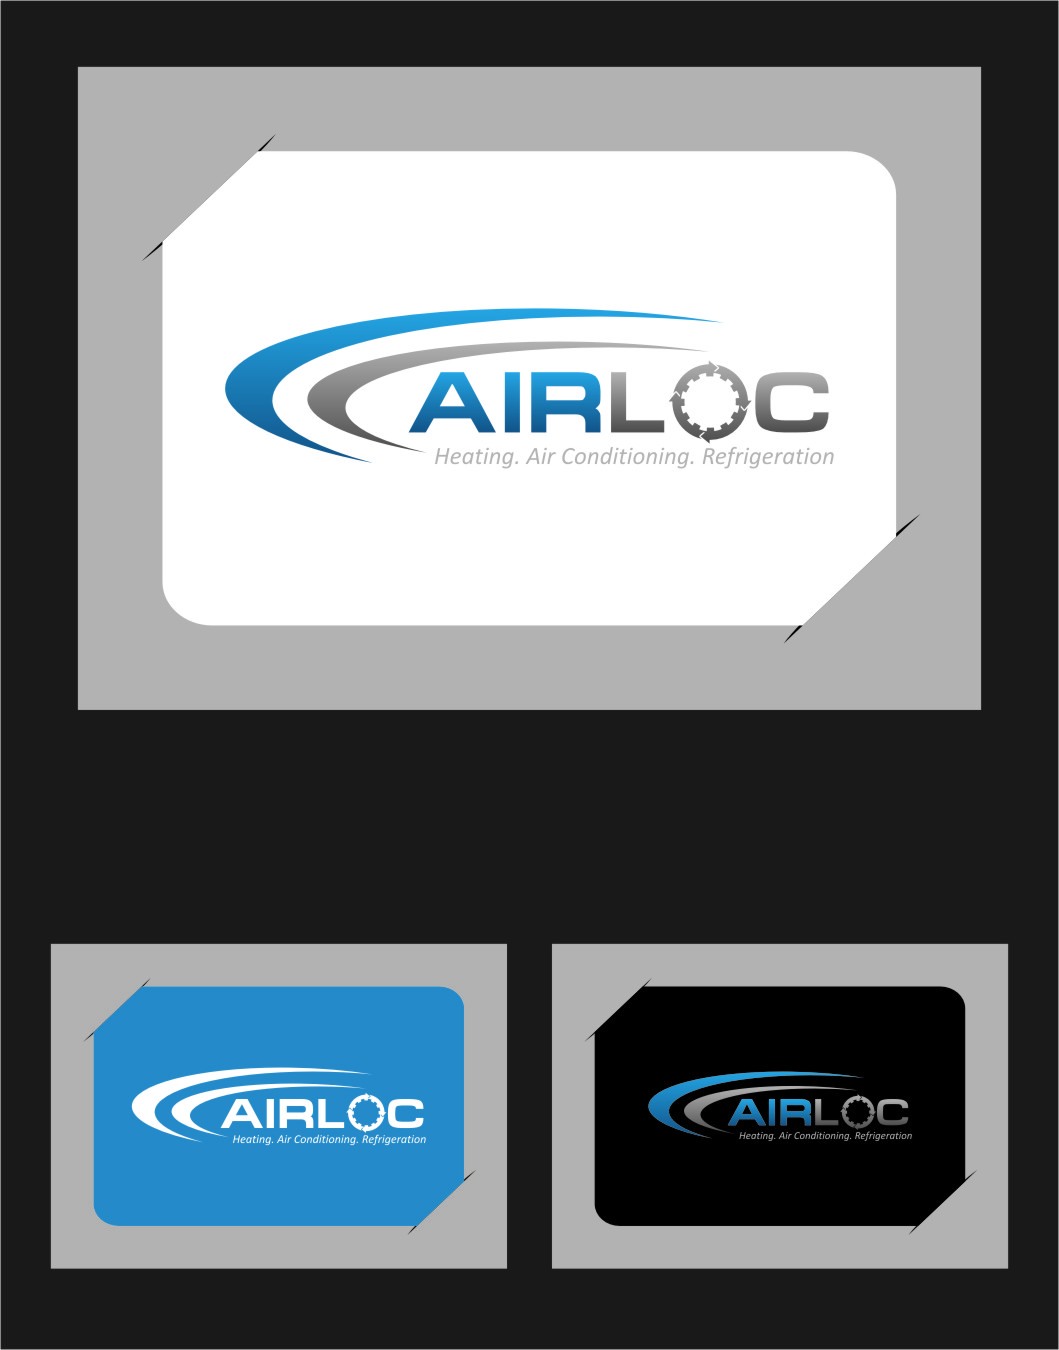 Logo Design by RasYa Muhammad Athaya - Entry No. 237 in the Logo Design Contest Airloc Logo Design.